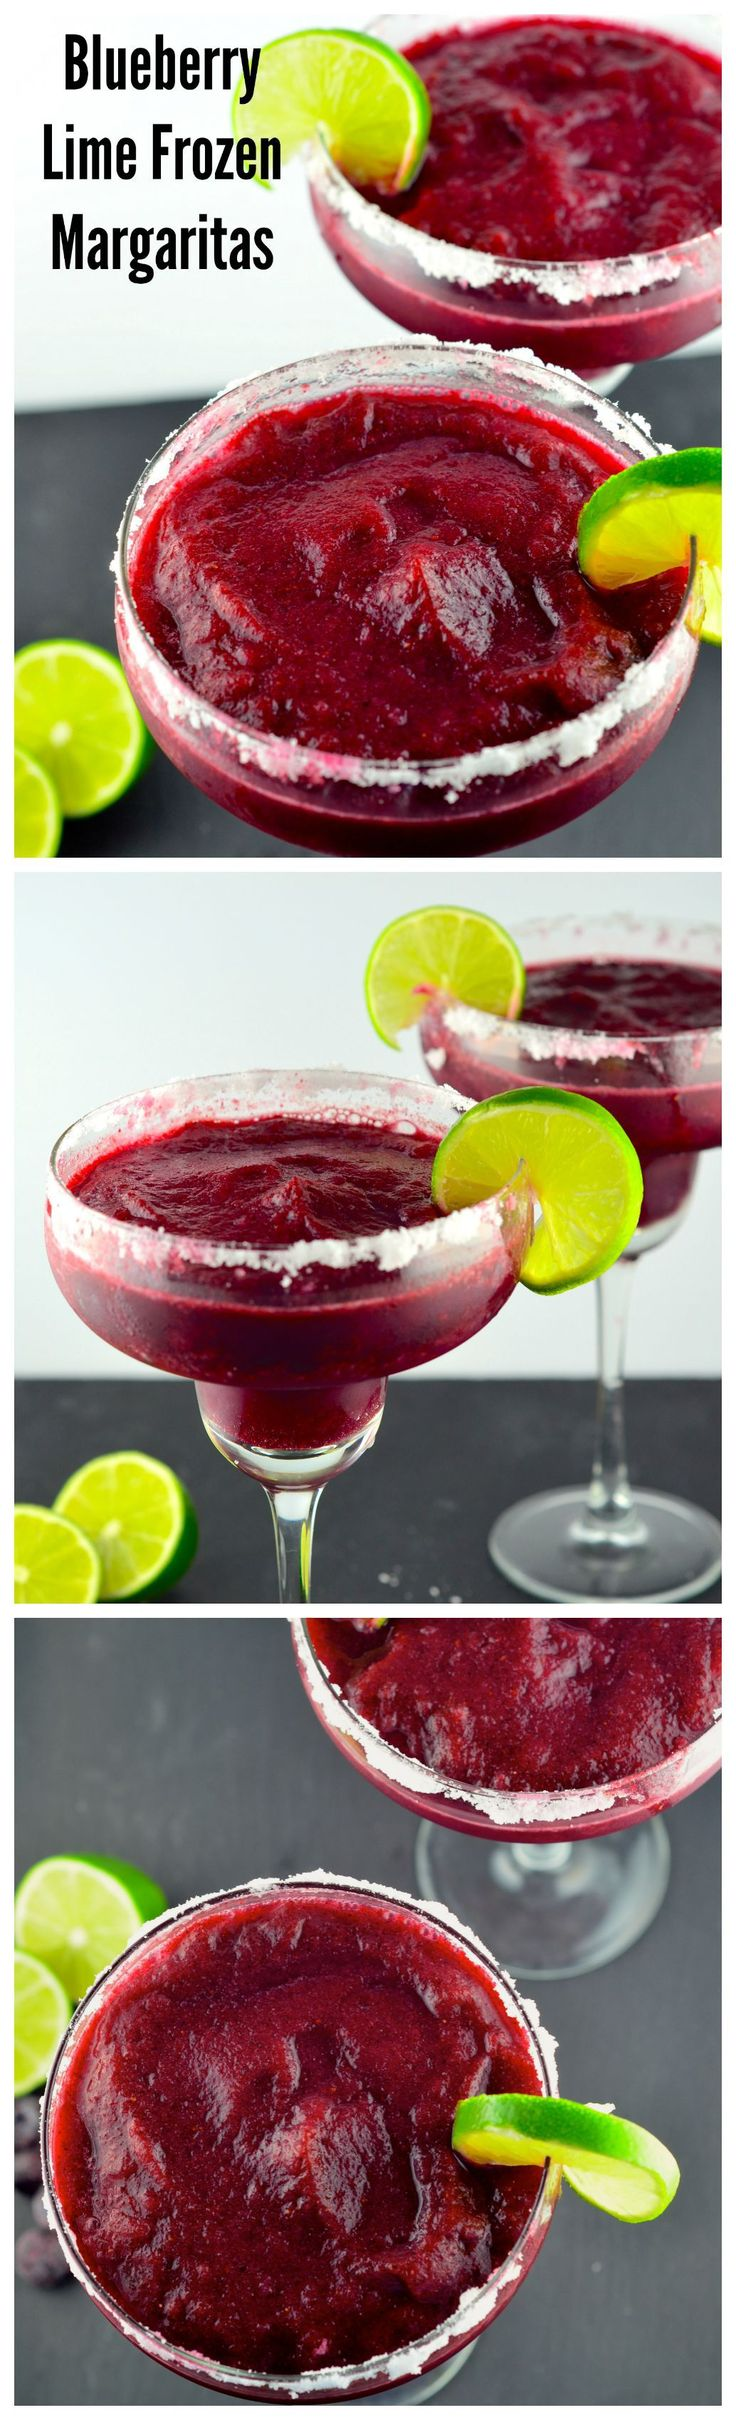 Blueberry Lime Margarita #summer #drink #cocktail #blueberry #lime #refreshing #margarita